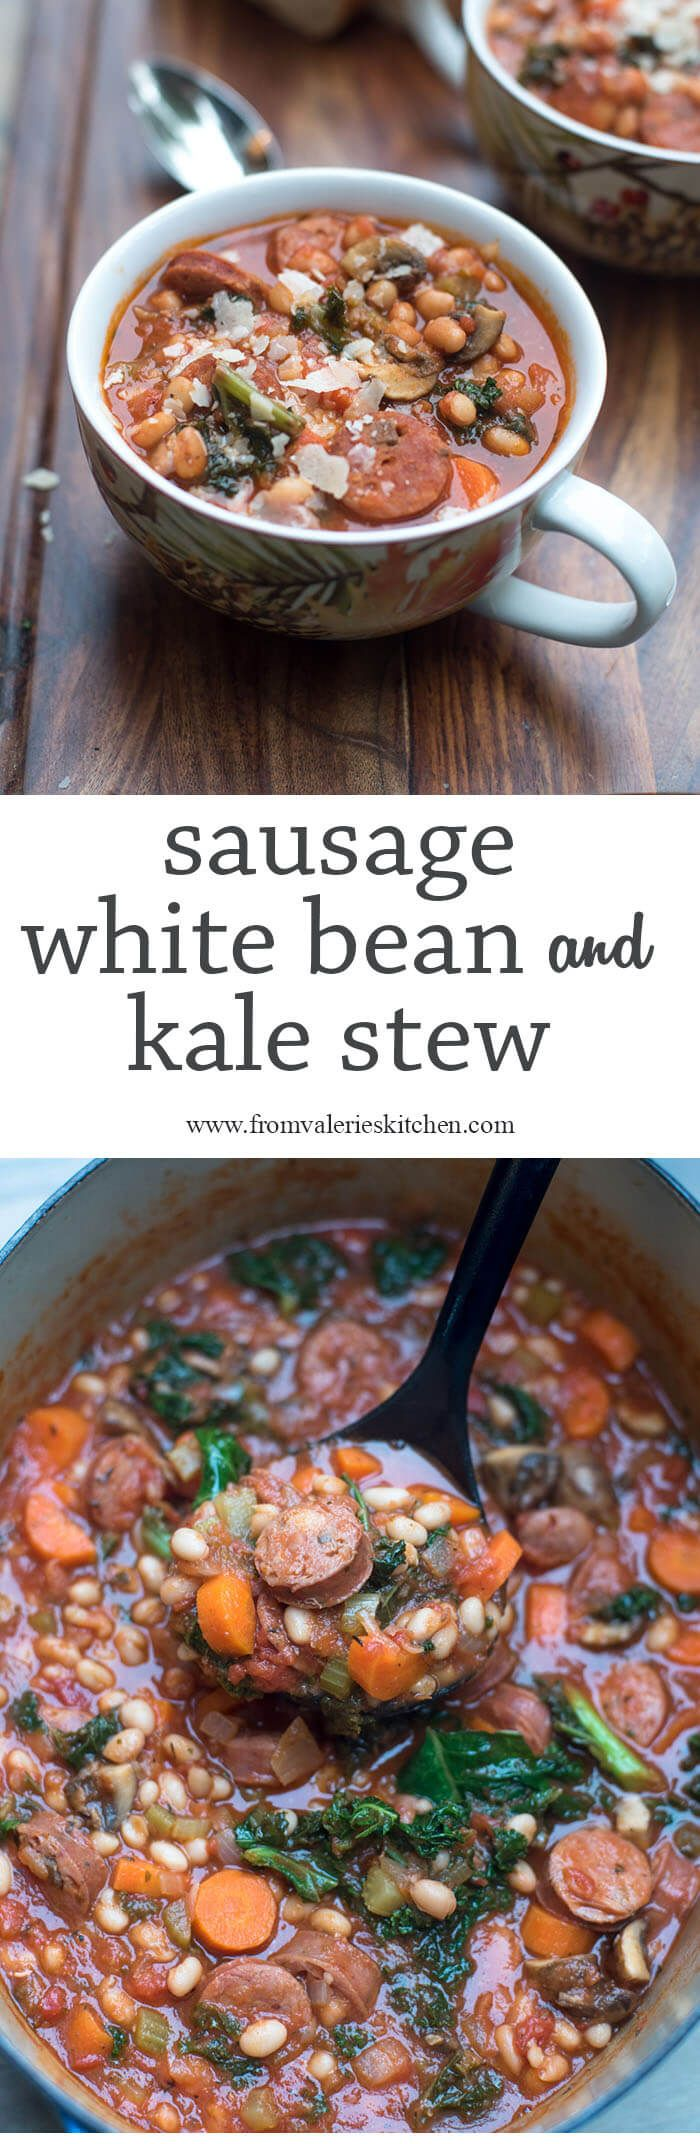 This rustic, comforting Sausage White Bean and Kale Stew is just the ...